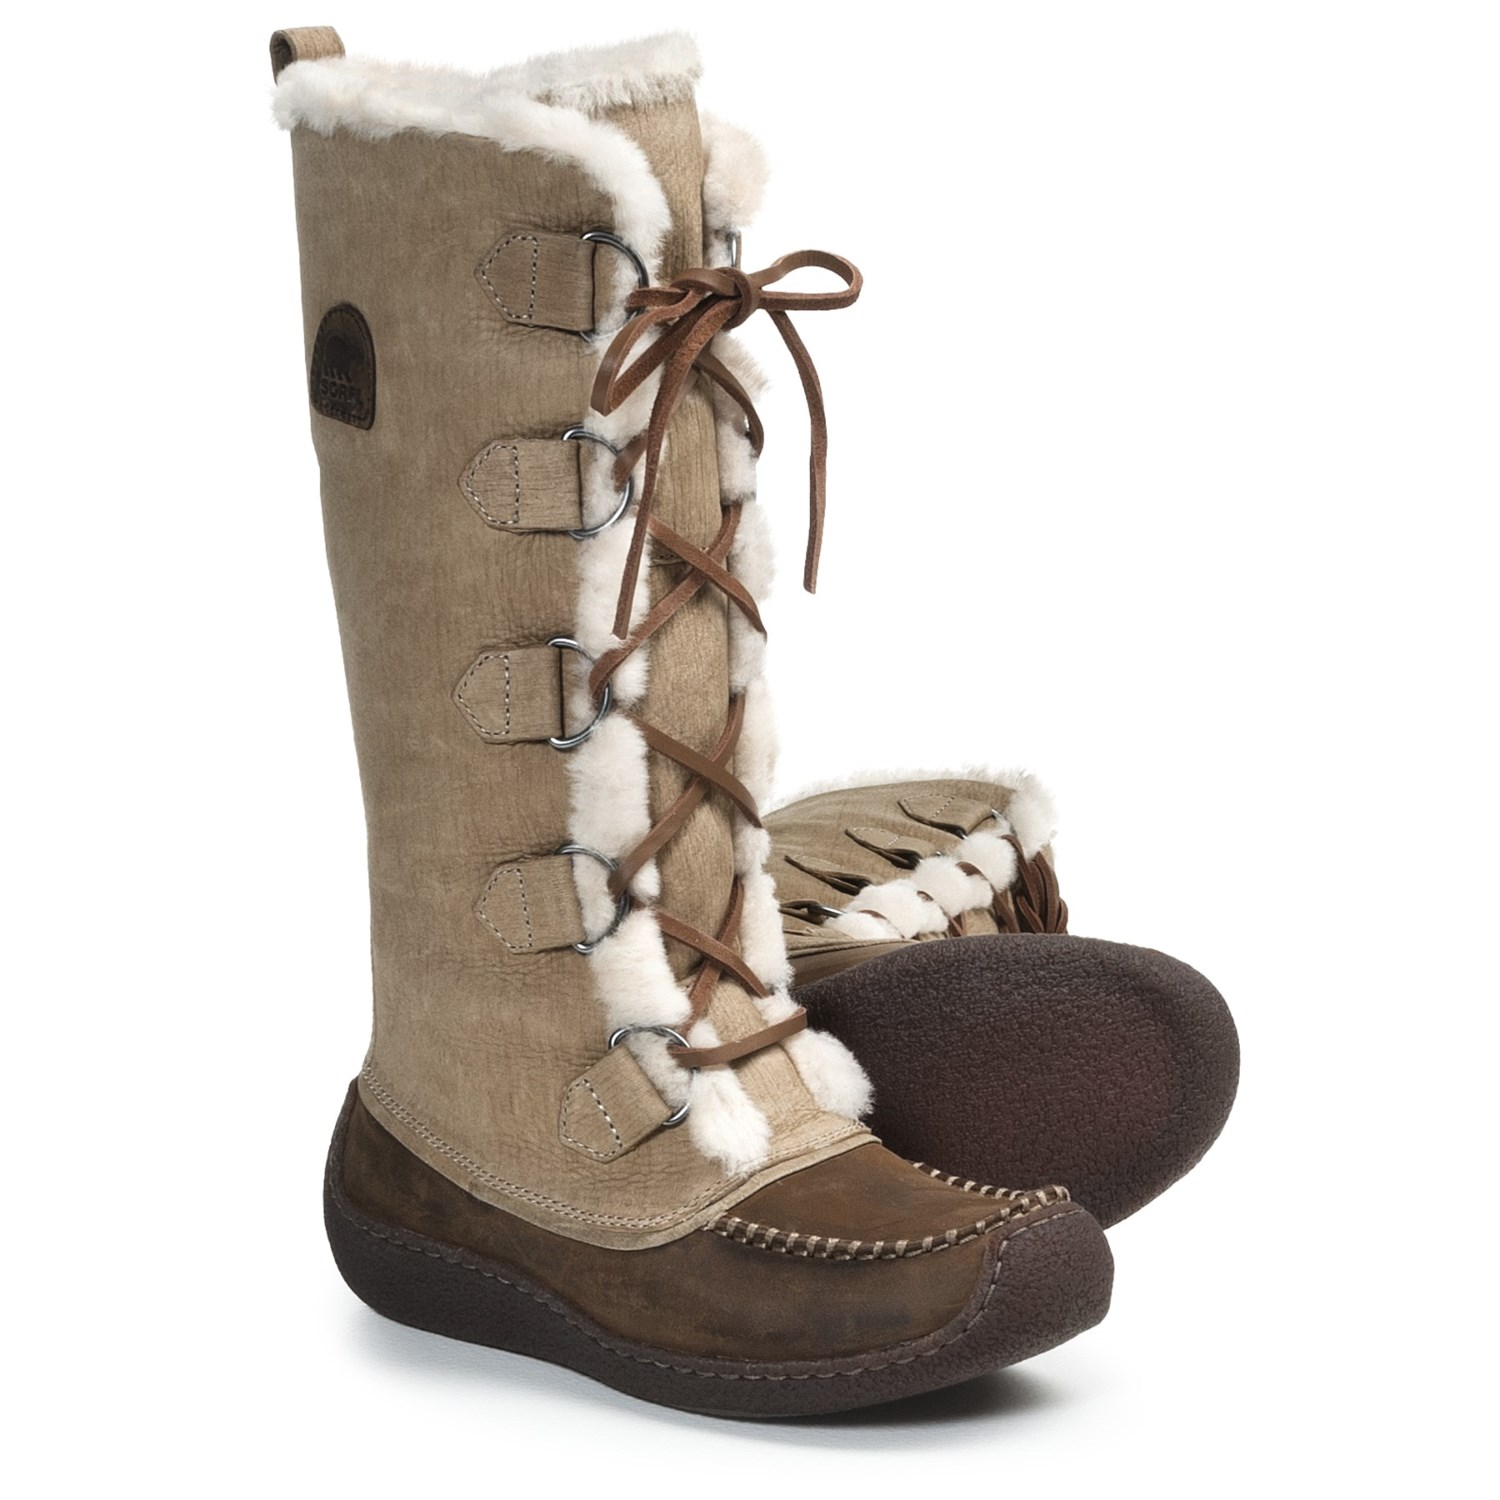 Ladies sorel winter boots canada : Vinyl mp3 player